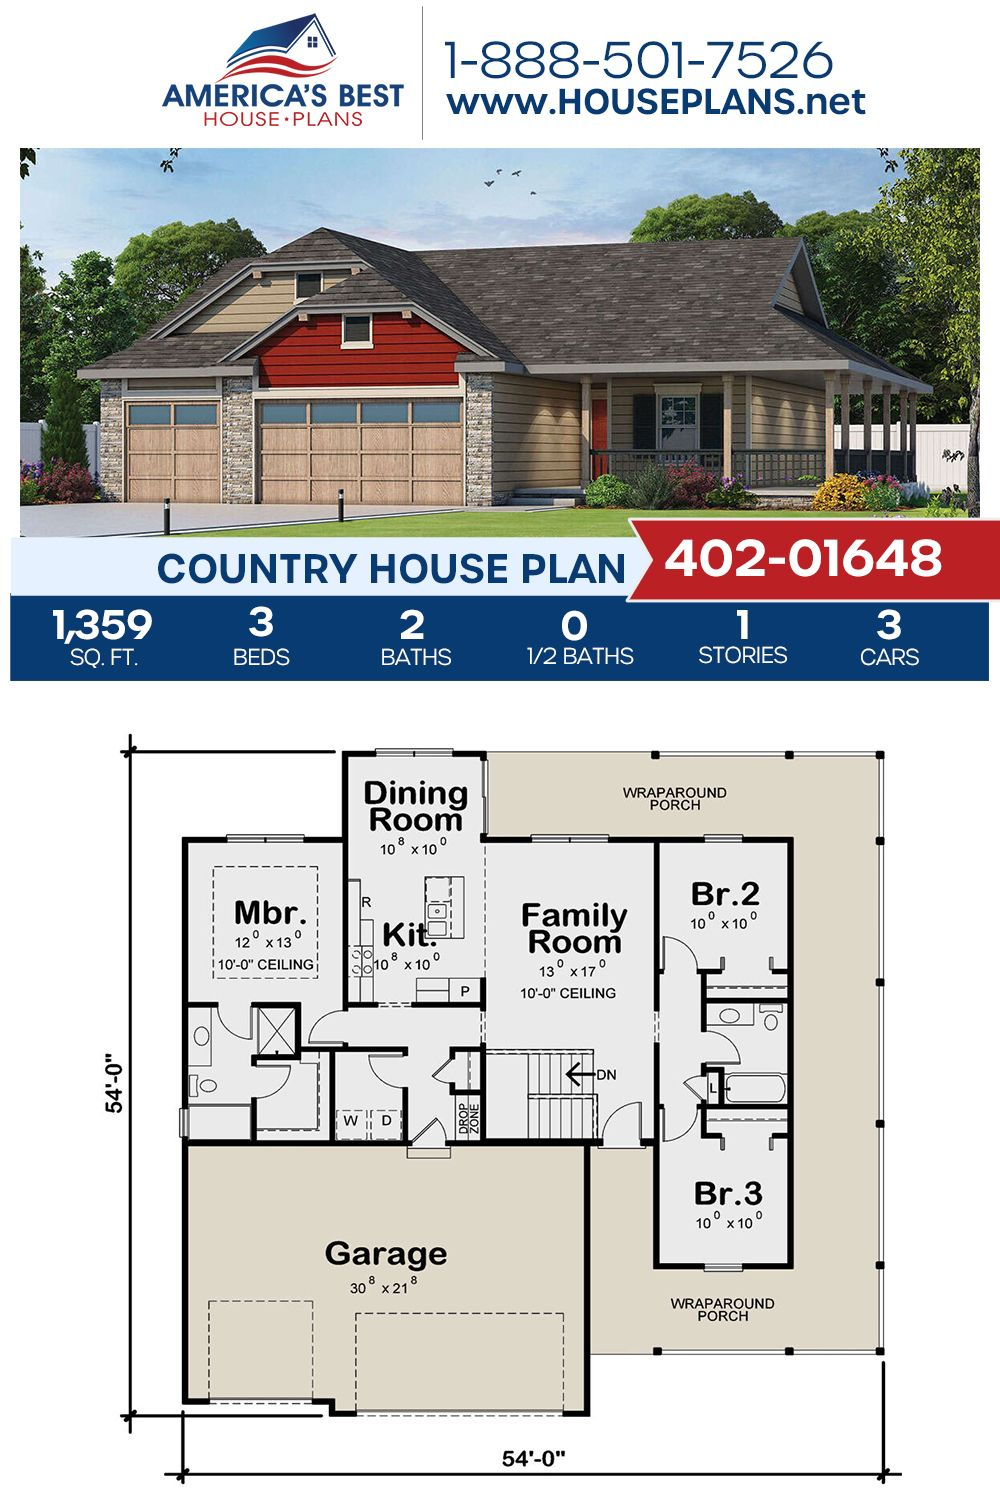 House Plan 402 01648 Country Plan 1 359 Square Feet 3 Bedrooms 2 Bathrooms In 2020 House Plans Narrow House Plans Country House Plans